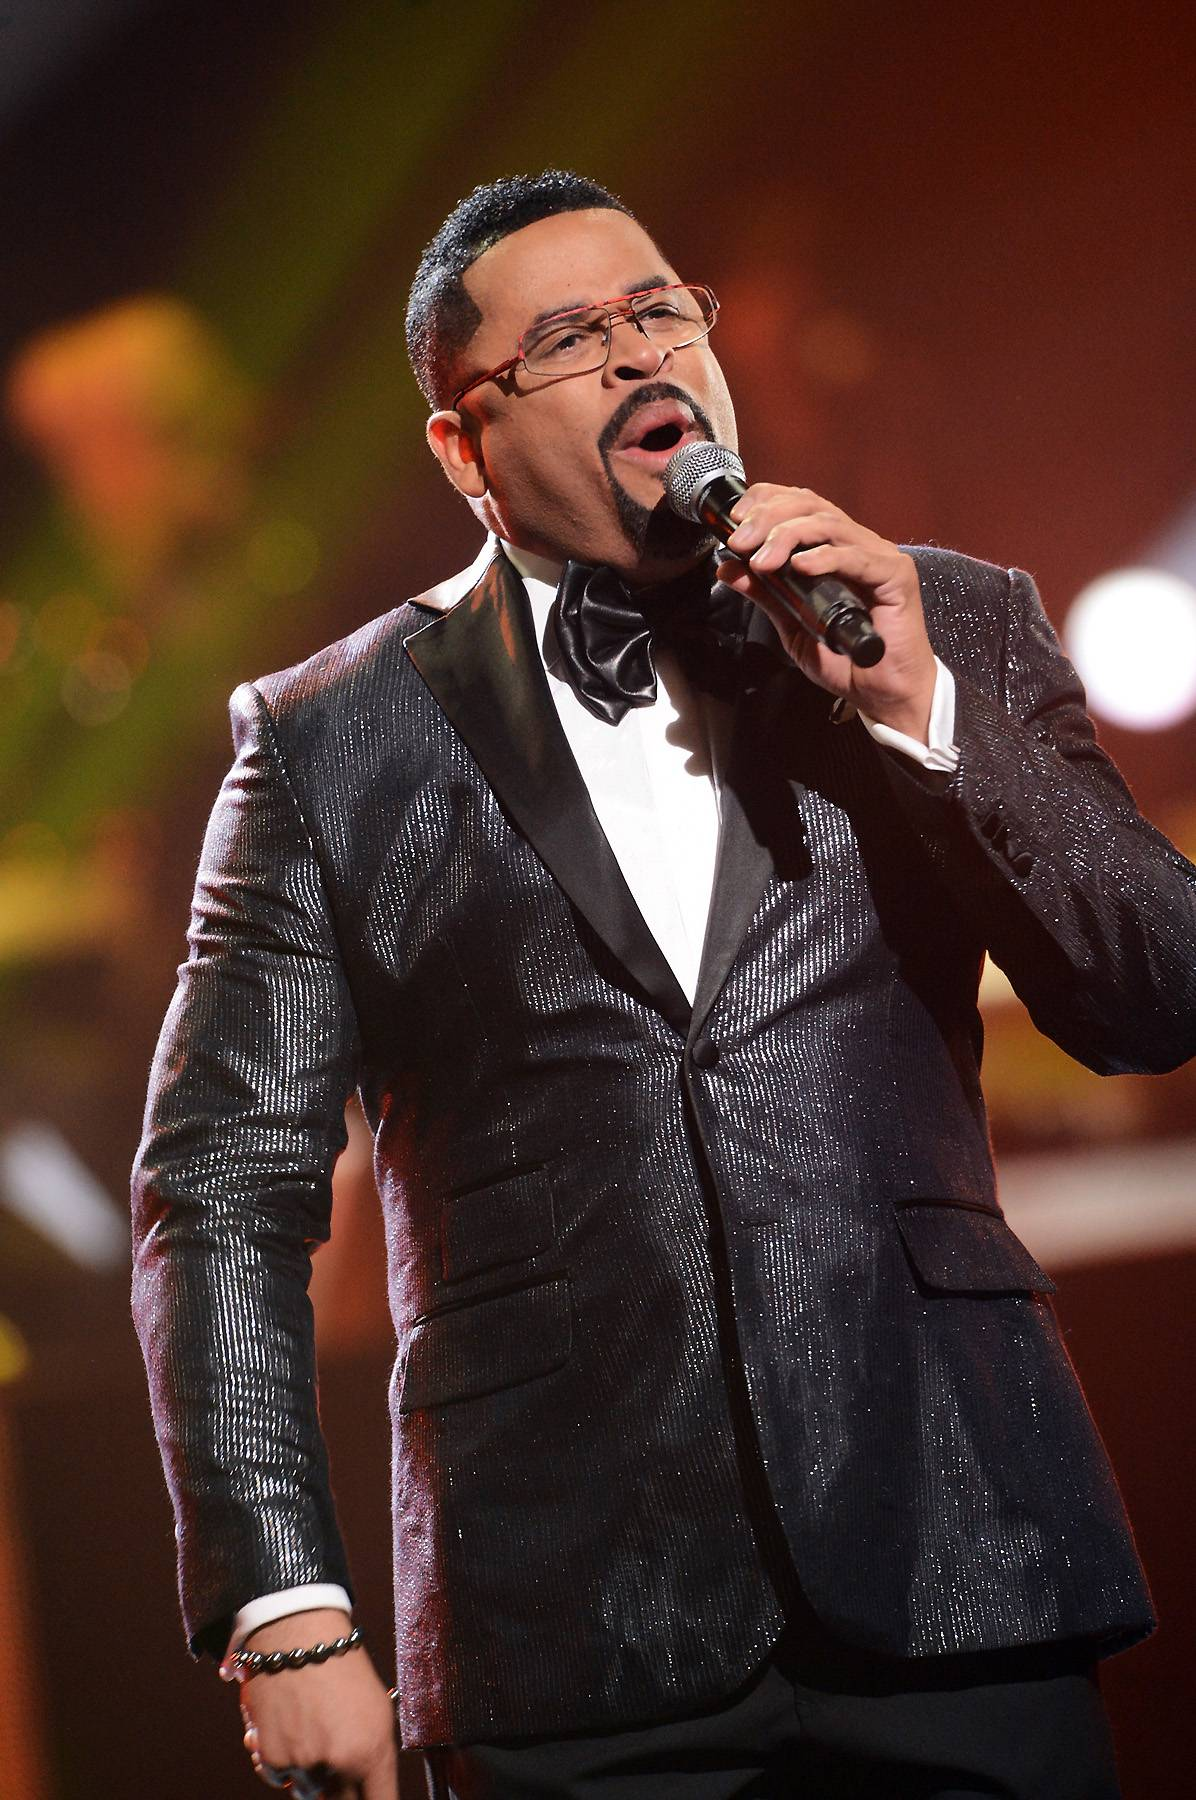 Byron Cage - From the group Purpose to his superstar status, Byron Cage's influence has rocked the gospel space and solidified his position now and forever as a star.    (Photo: Rick Diamond/Getty Images for The Stellar Awards)